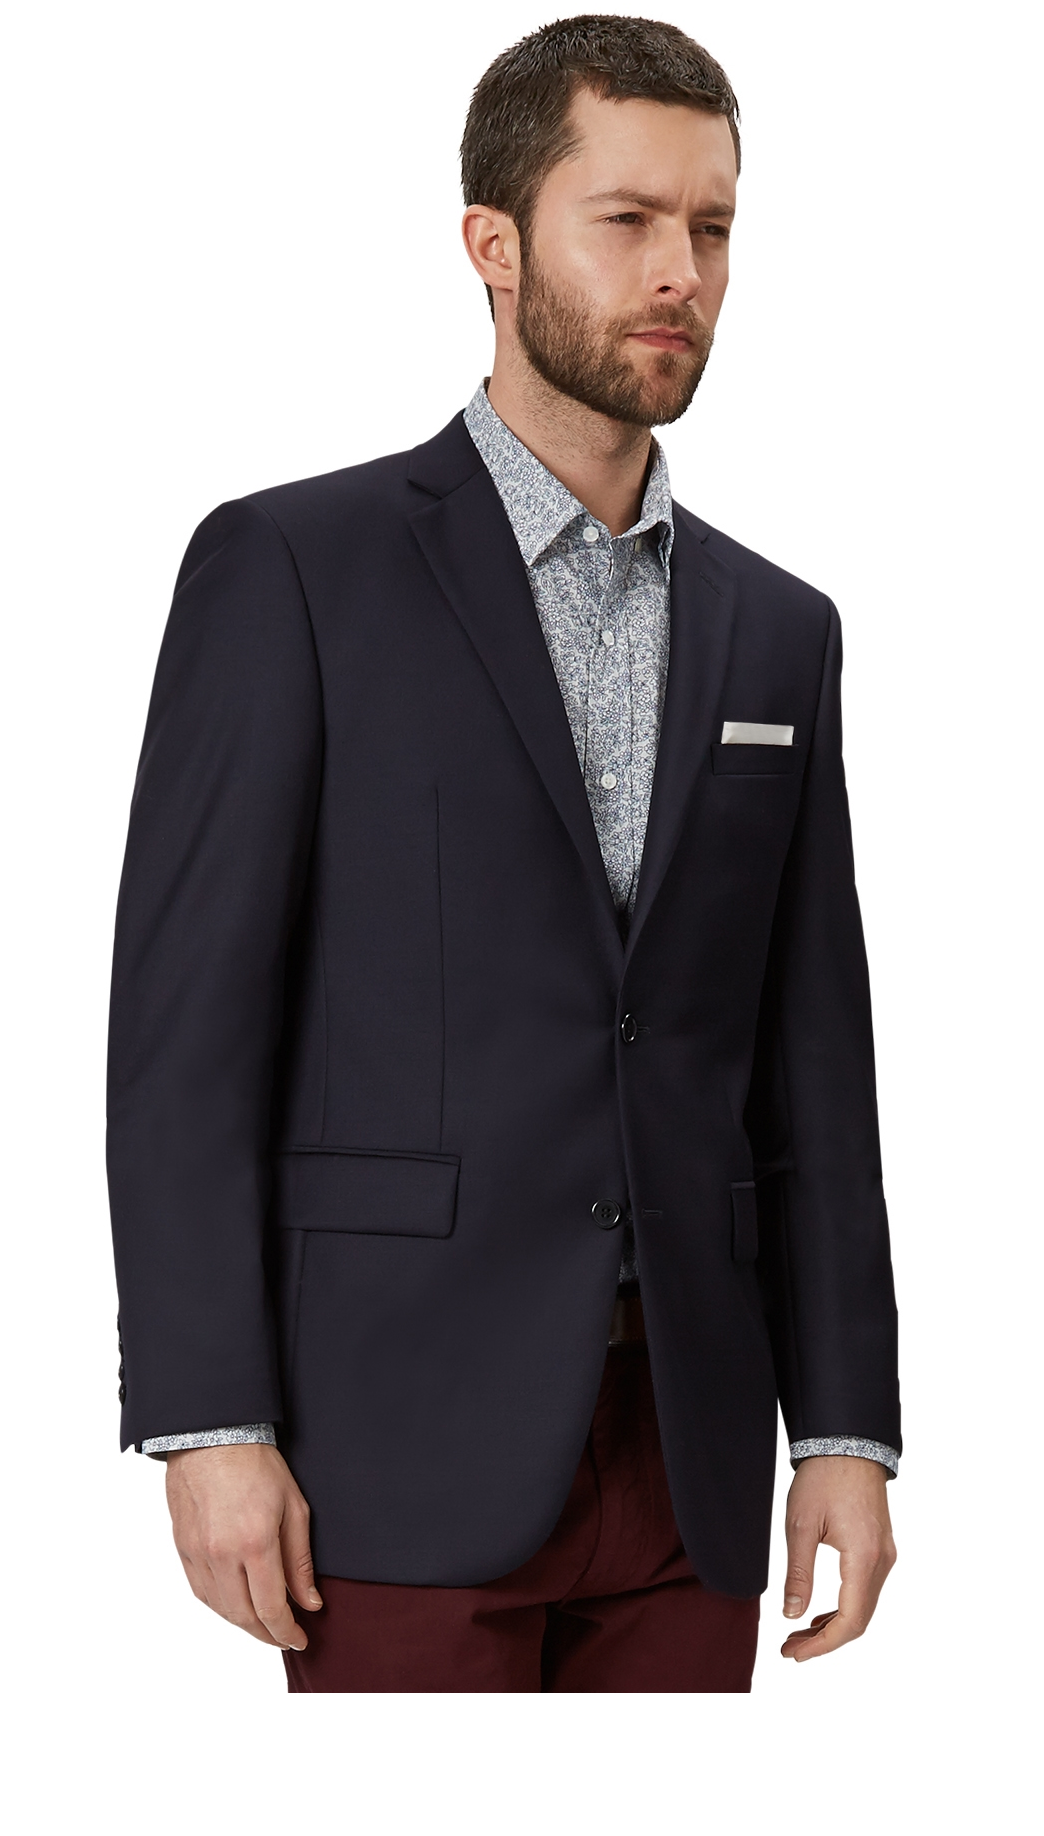 Moss Bros Mens Navy Suit Jacket Tailored Fit Single Breasted Wool ...